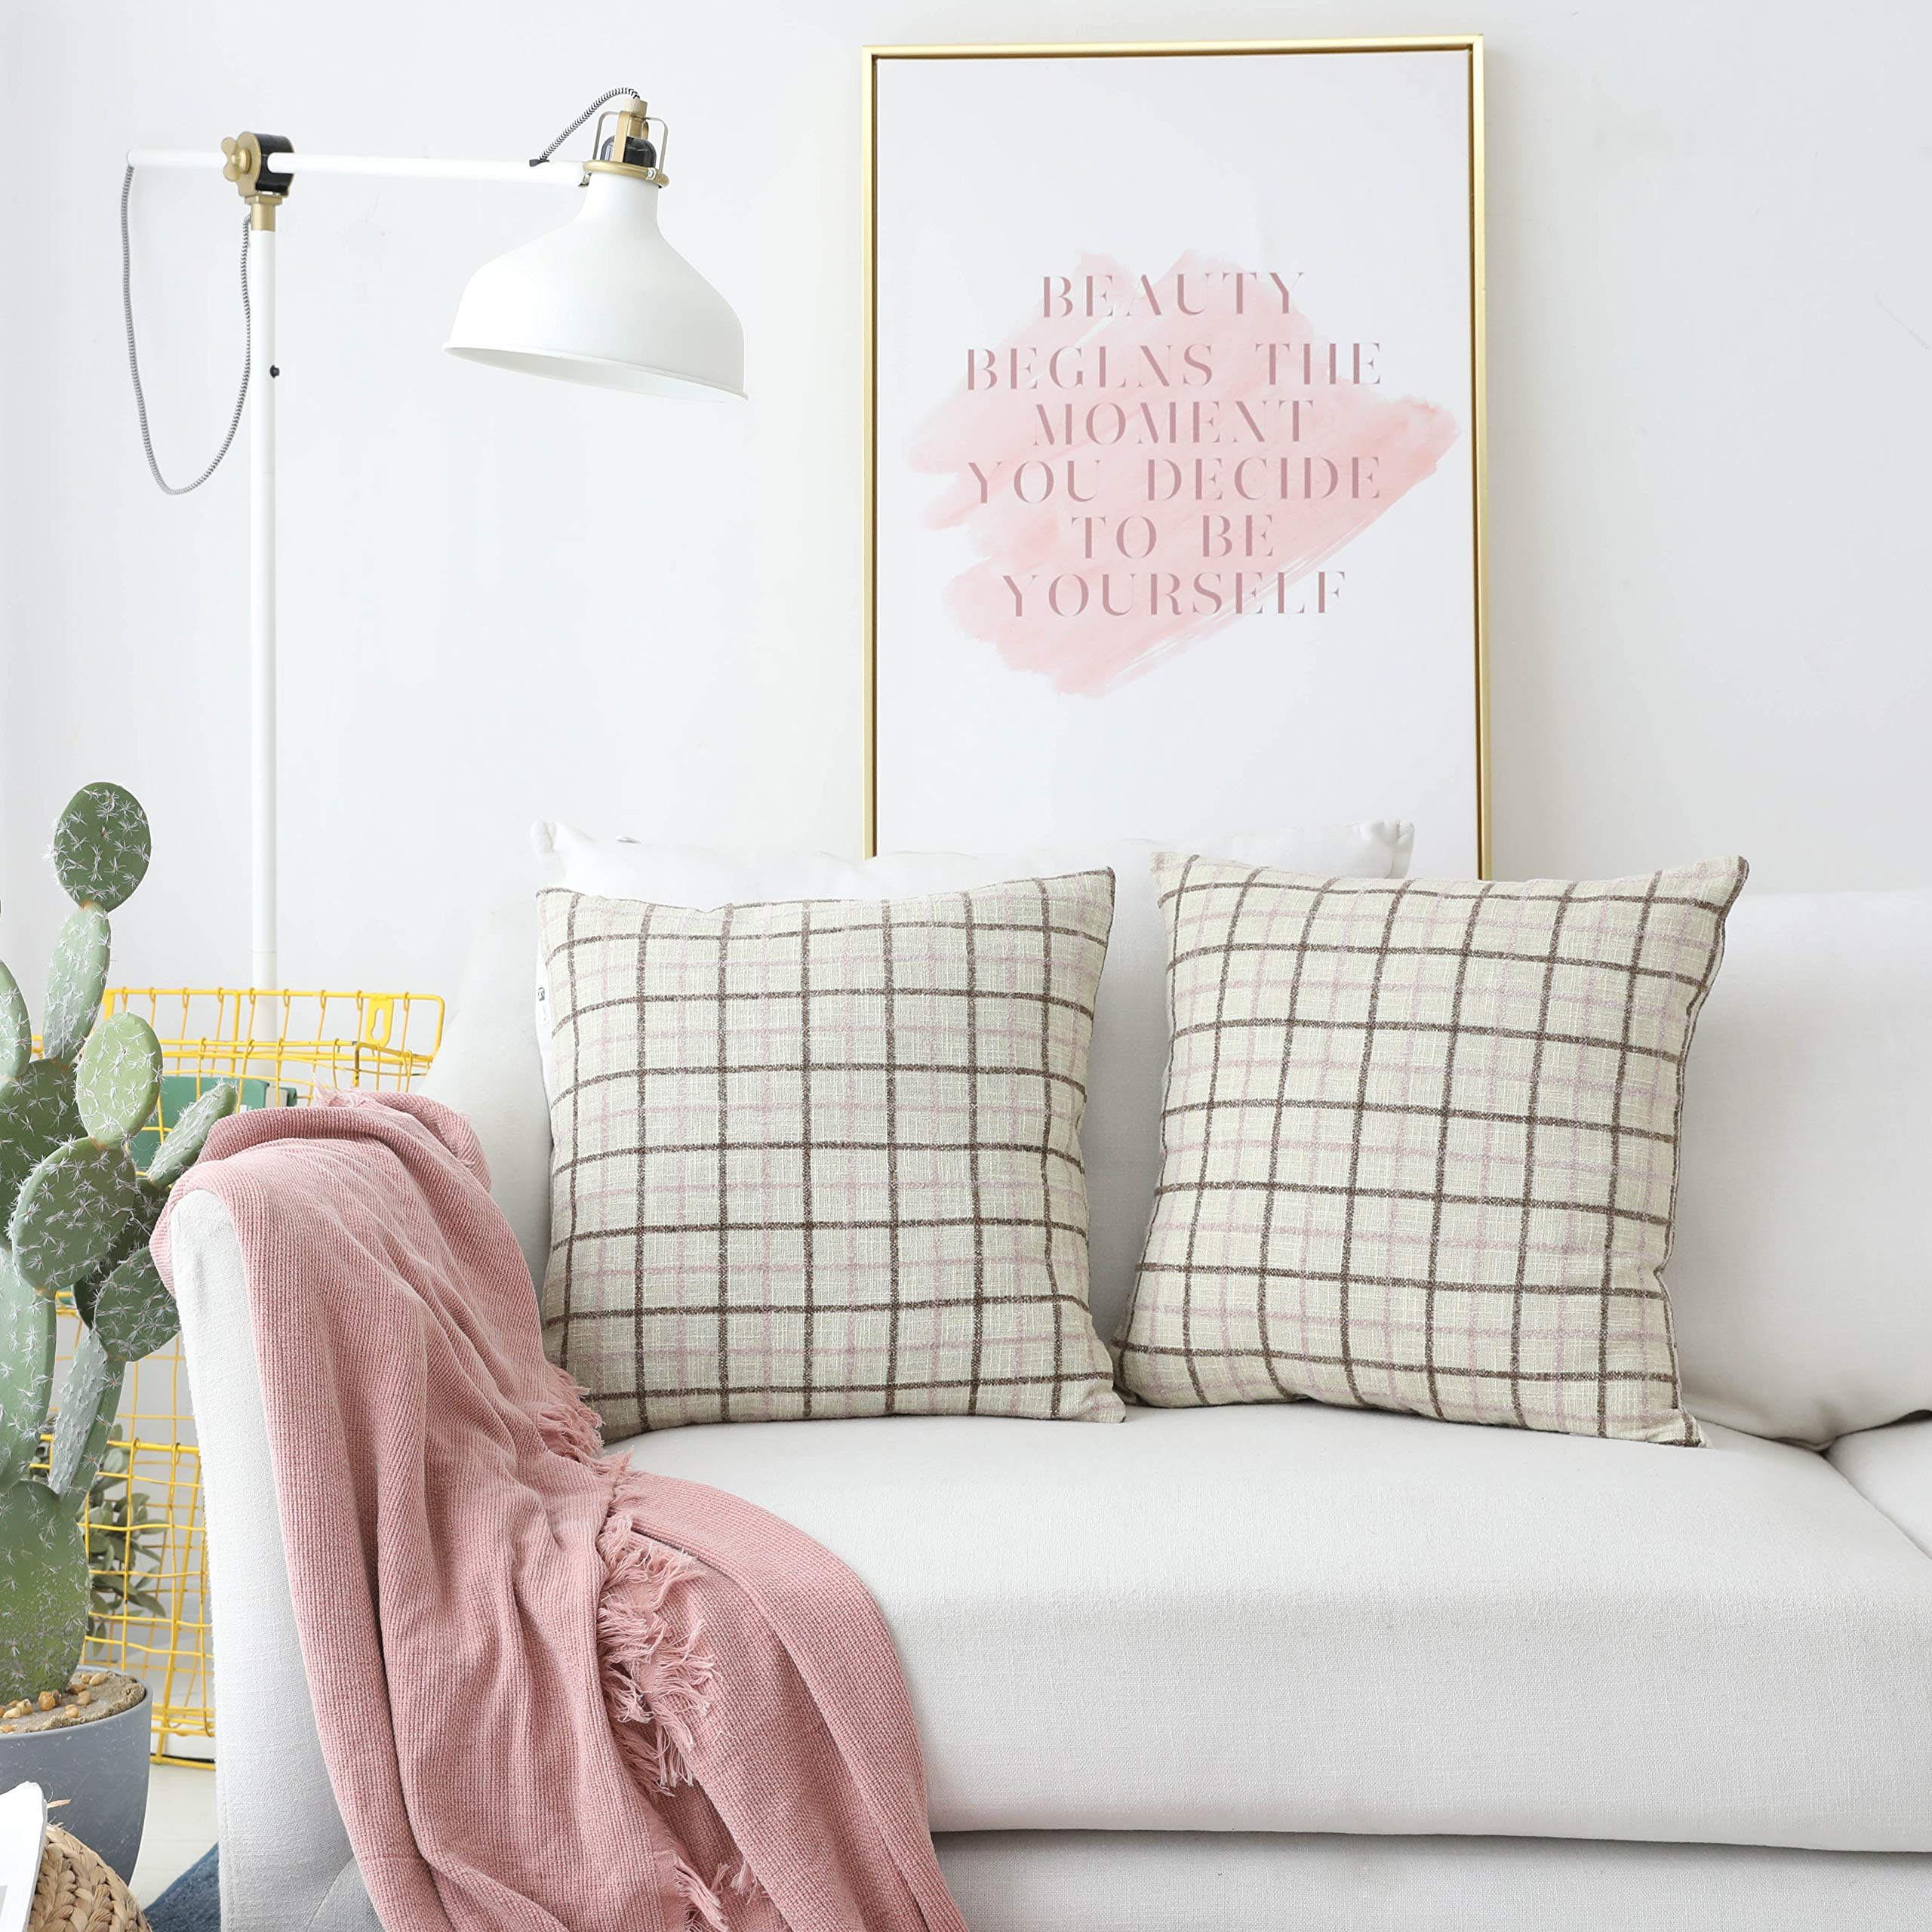 Kevin Textile Pack of 2, Decorative Fashion Classic Checkered Throw Pillow Covers Cotton Linen Chenille Jacquard Soft Square Cushion Case Car/Sofa/Bedroom, 18'' x 18'', Pink Lavender + Brown